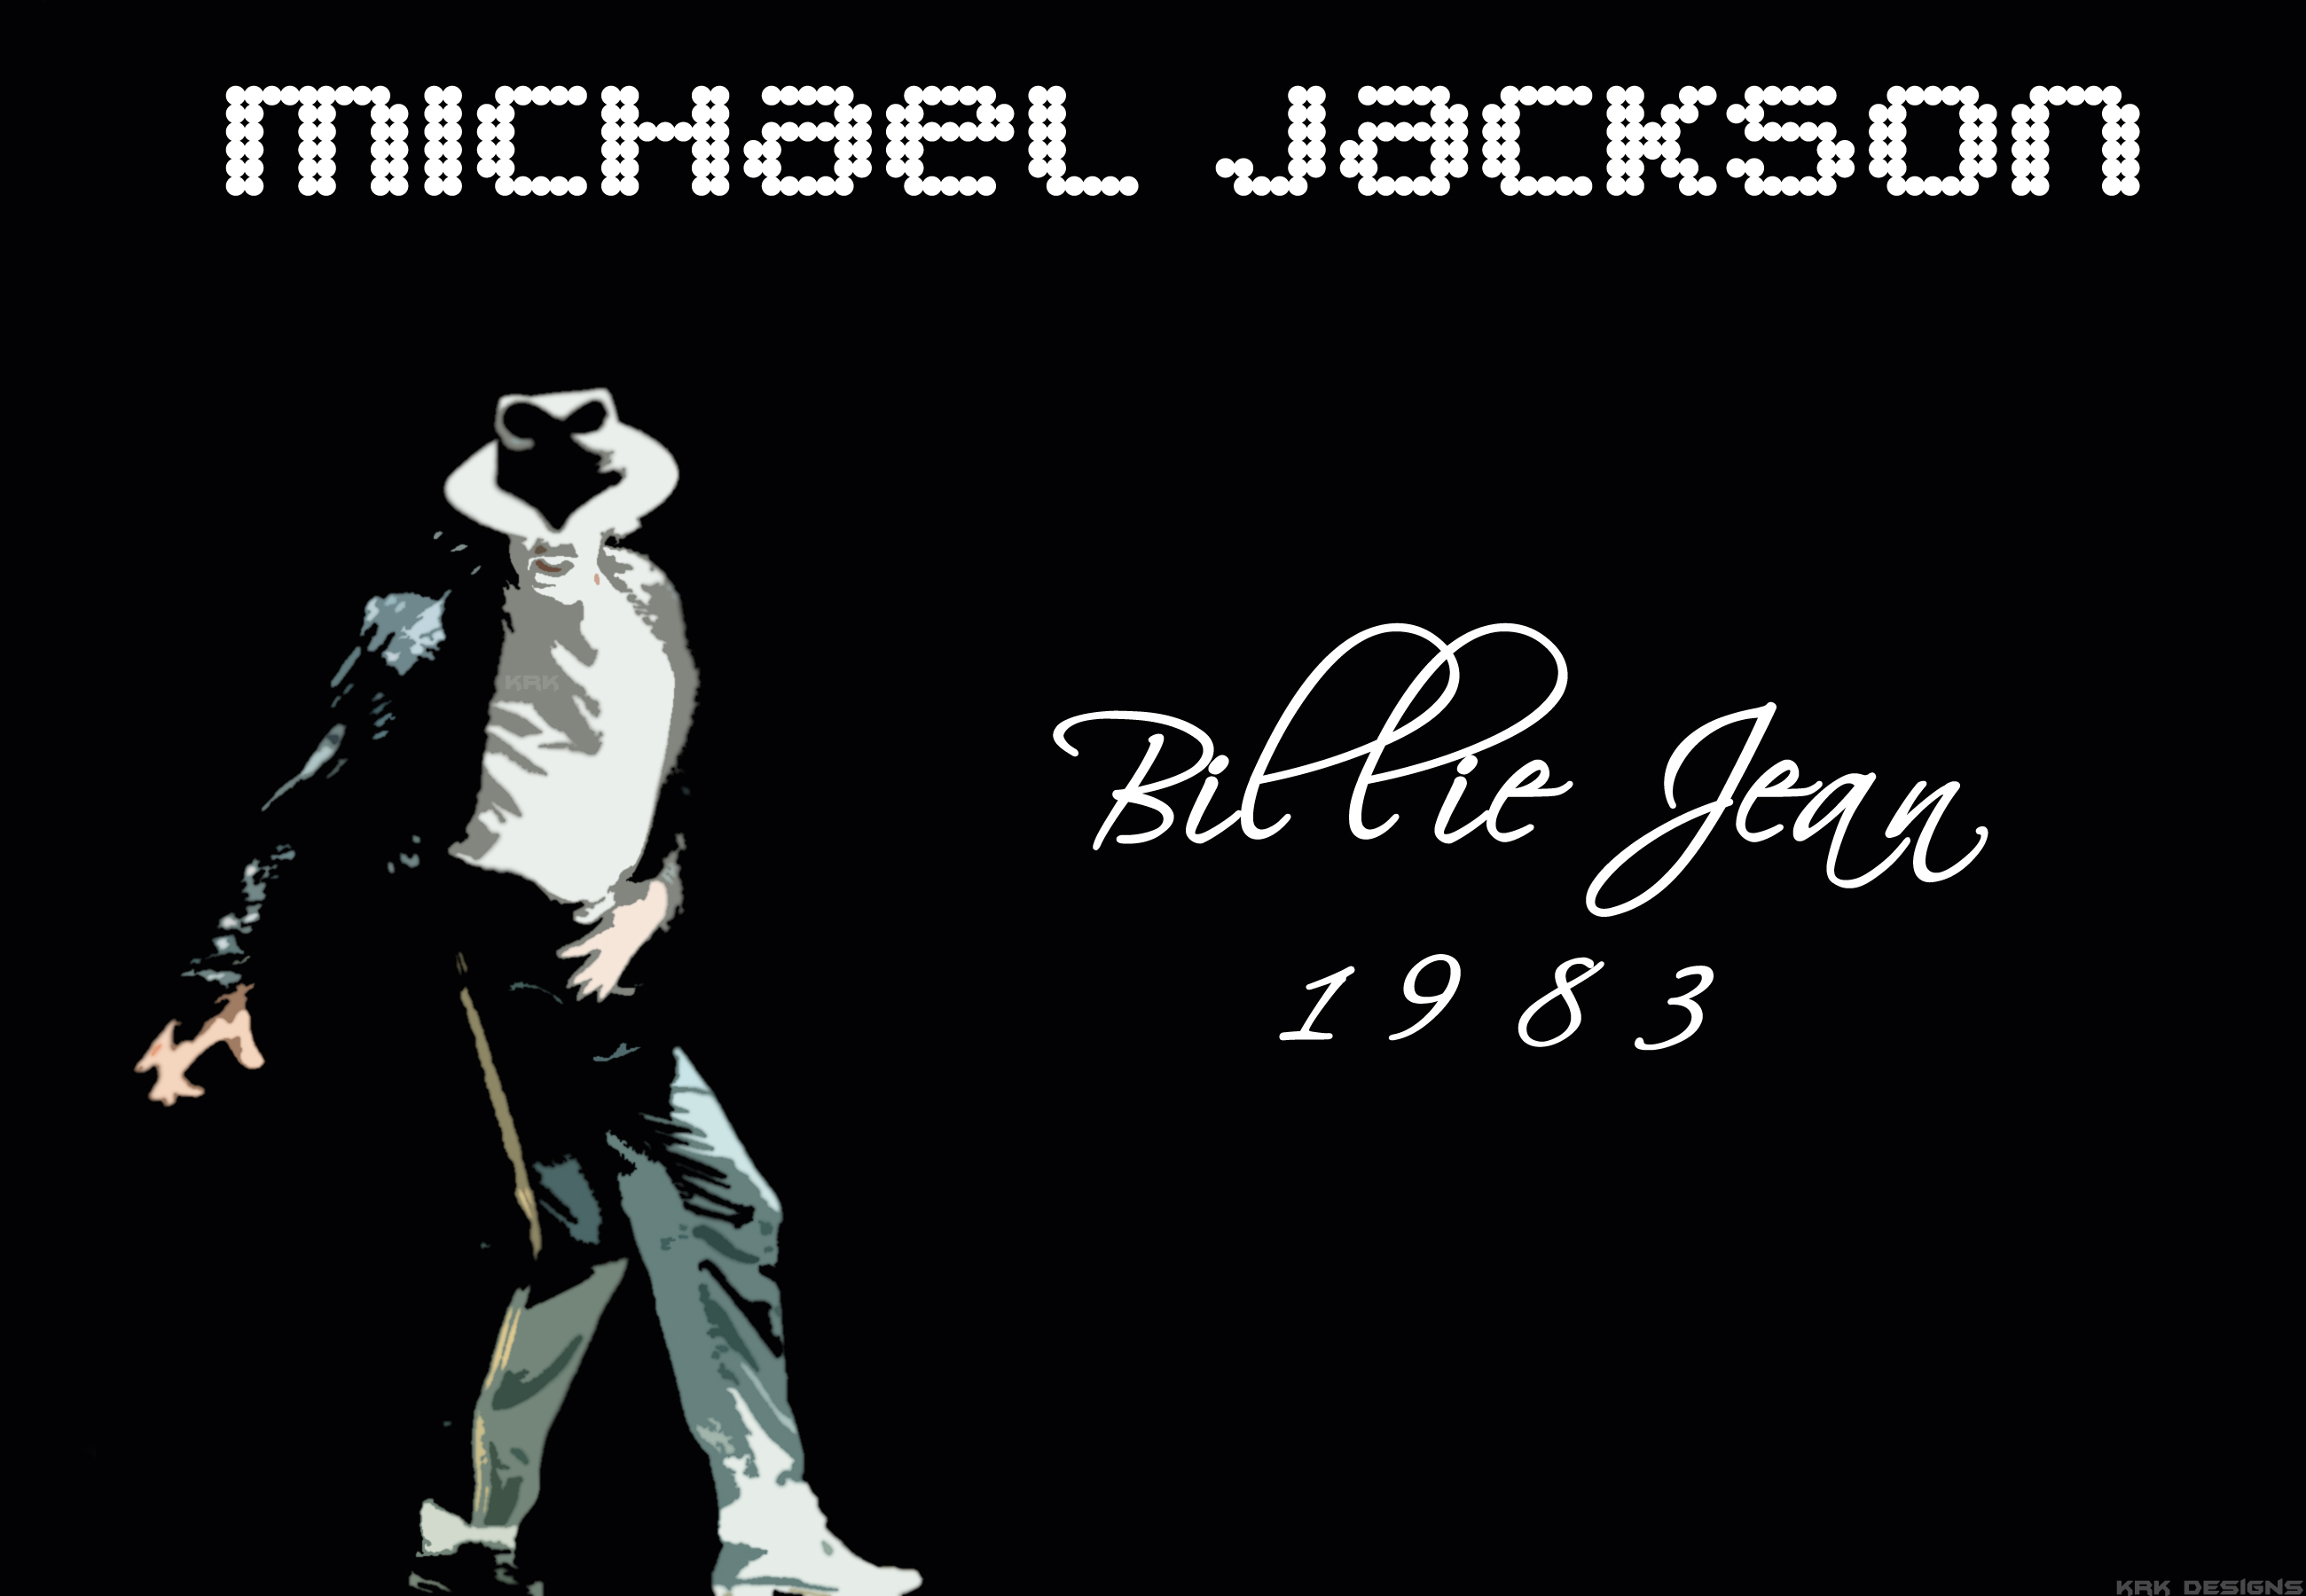 Michael Jackson - Billie Jean by krkdesigns